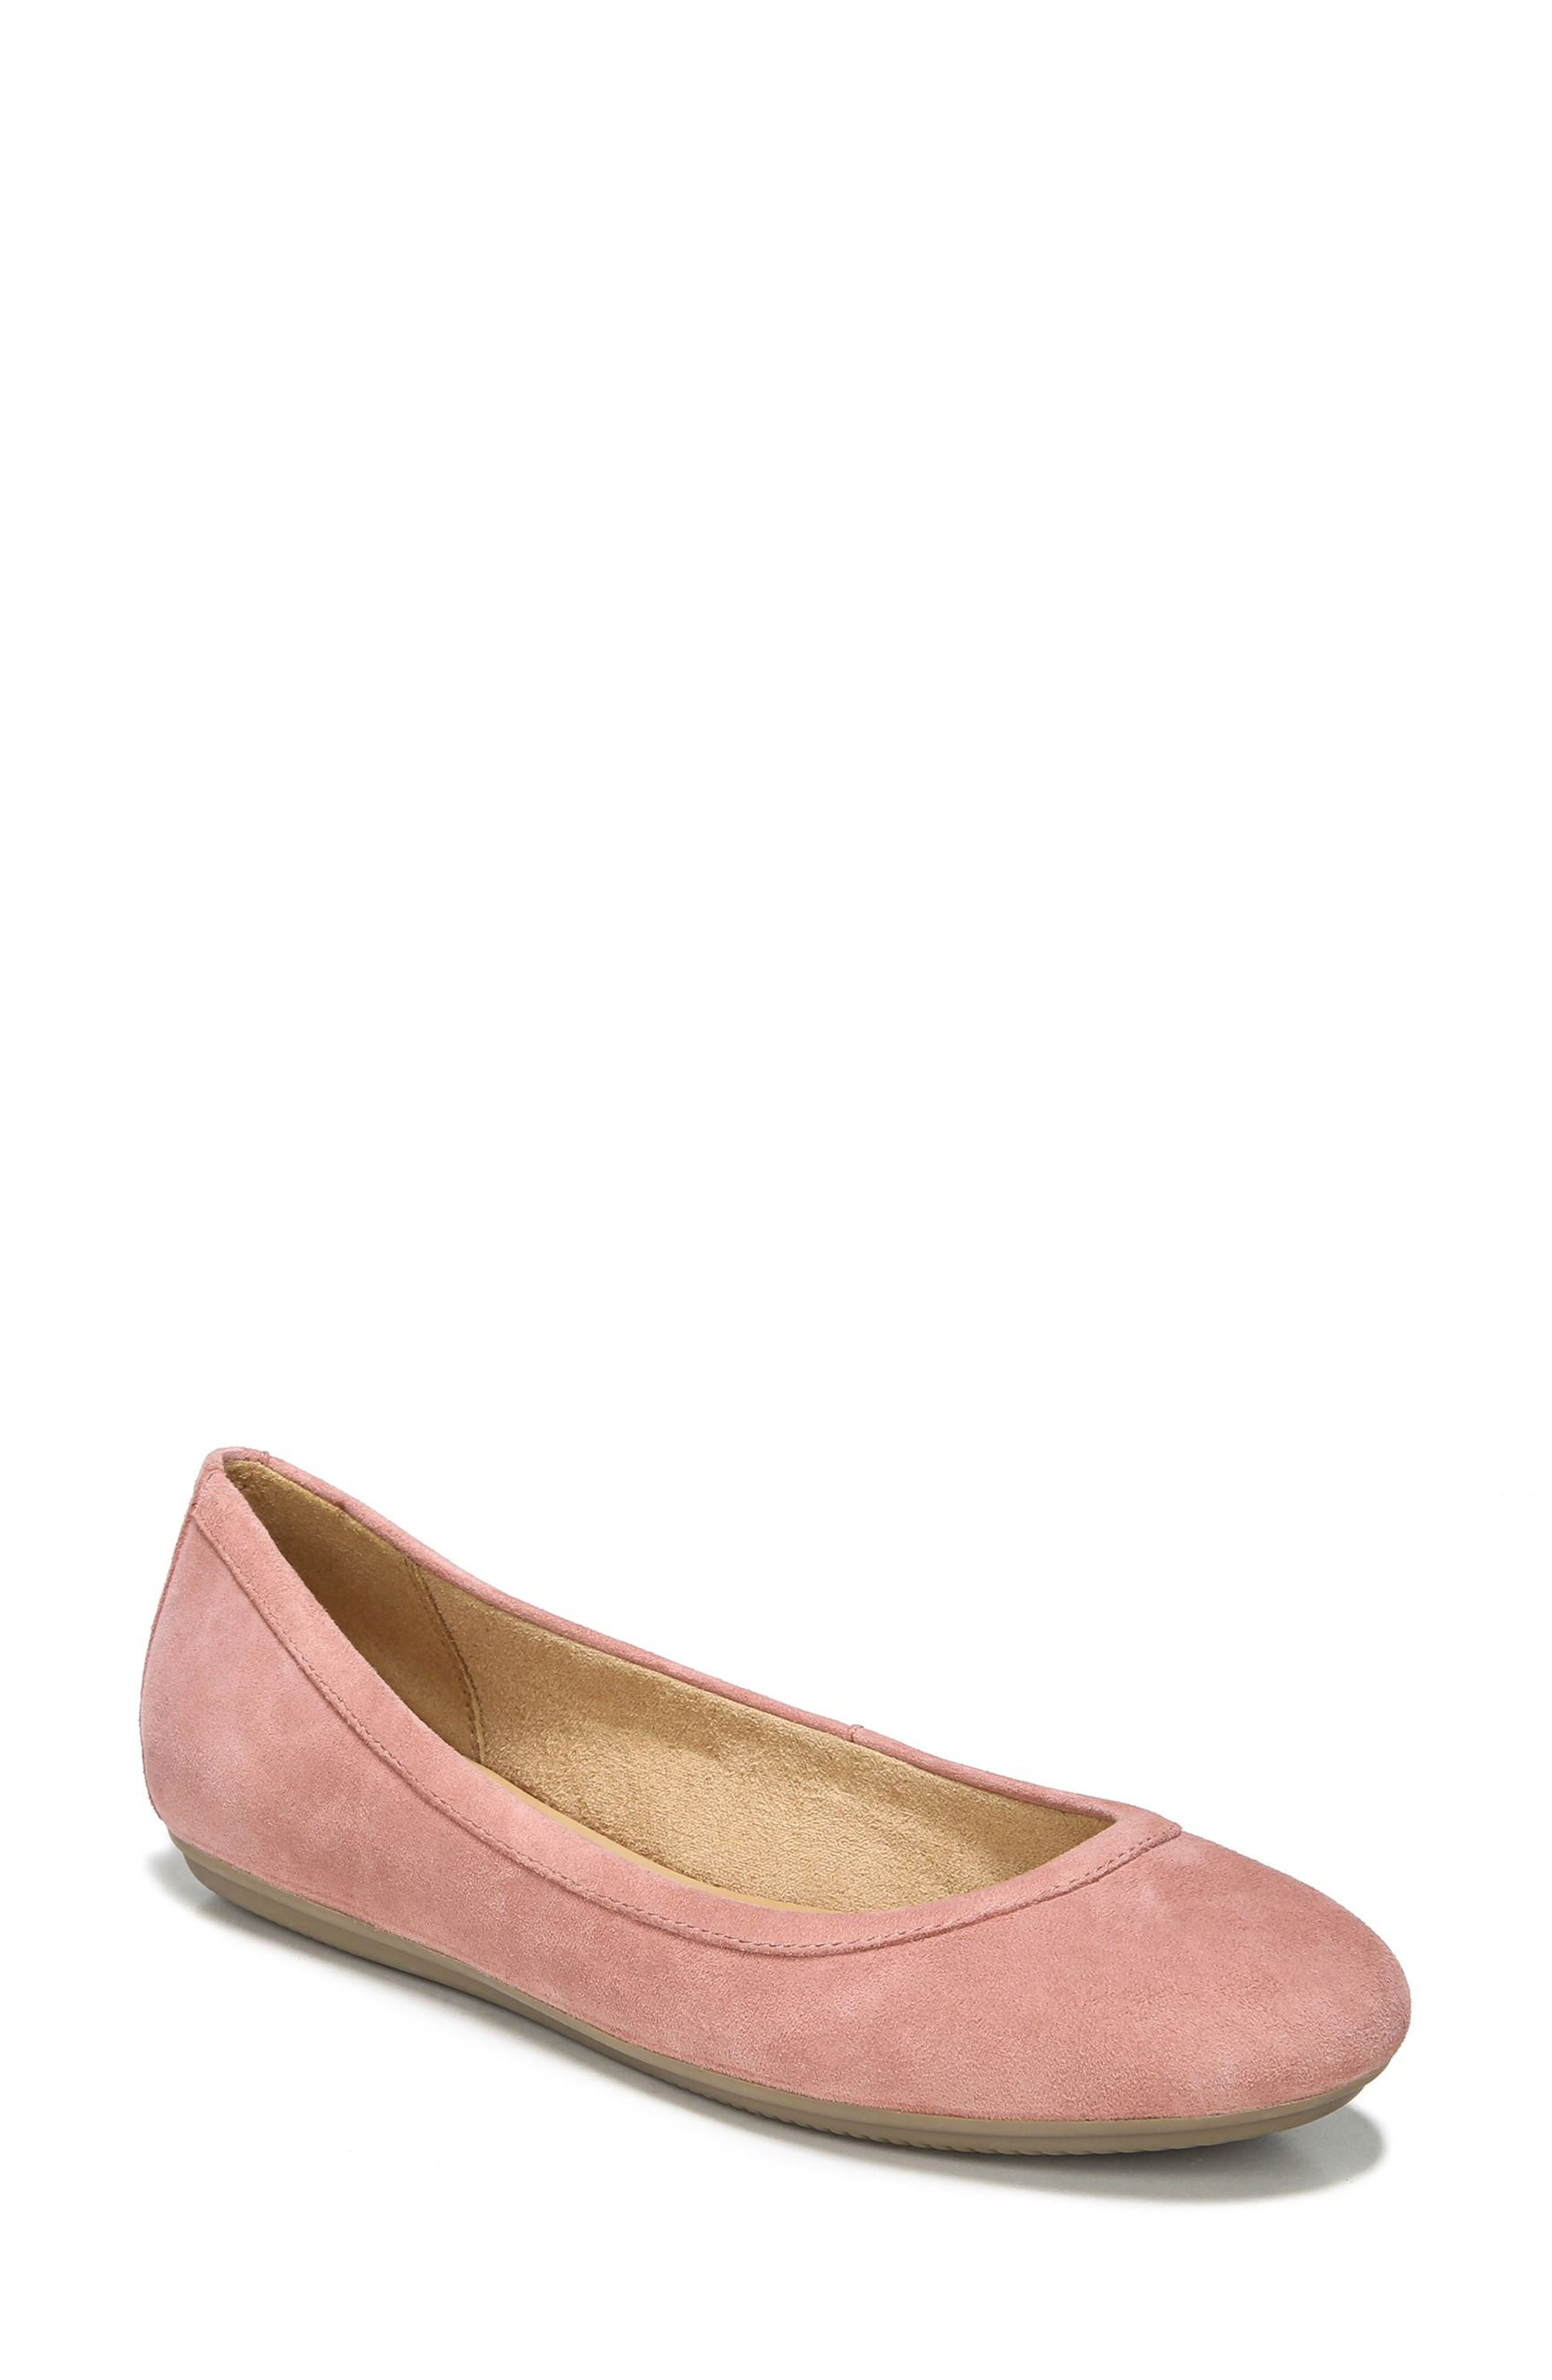 NATURALIZER, Brittany Ballet Flat, Main thumbnail 1, color, PEONY PINK SUEDE